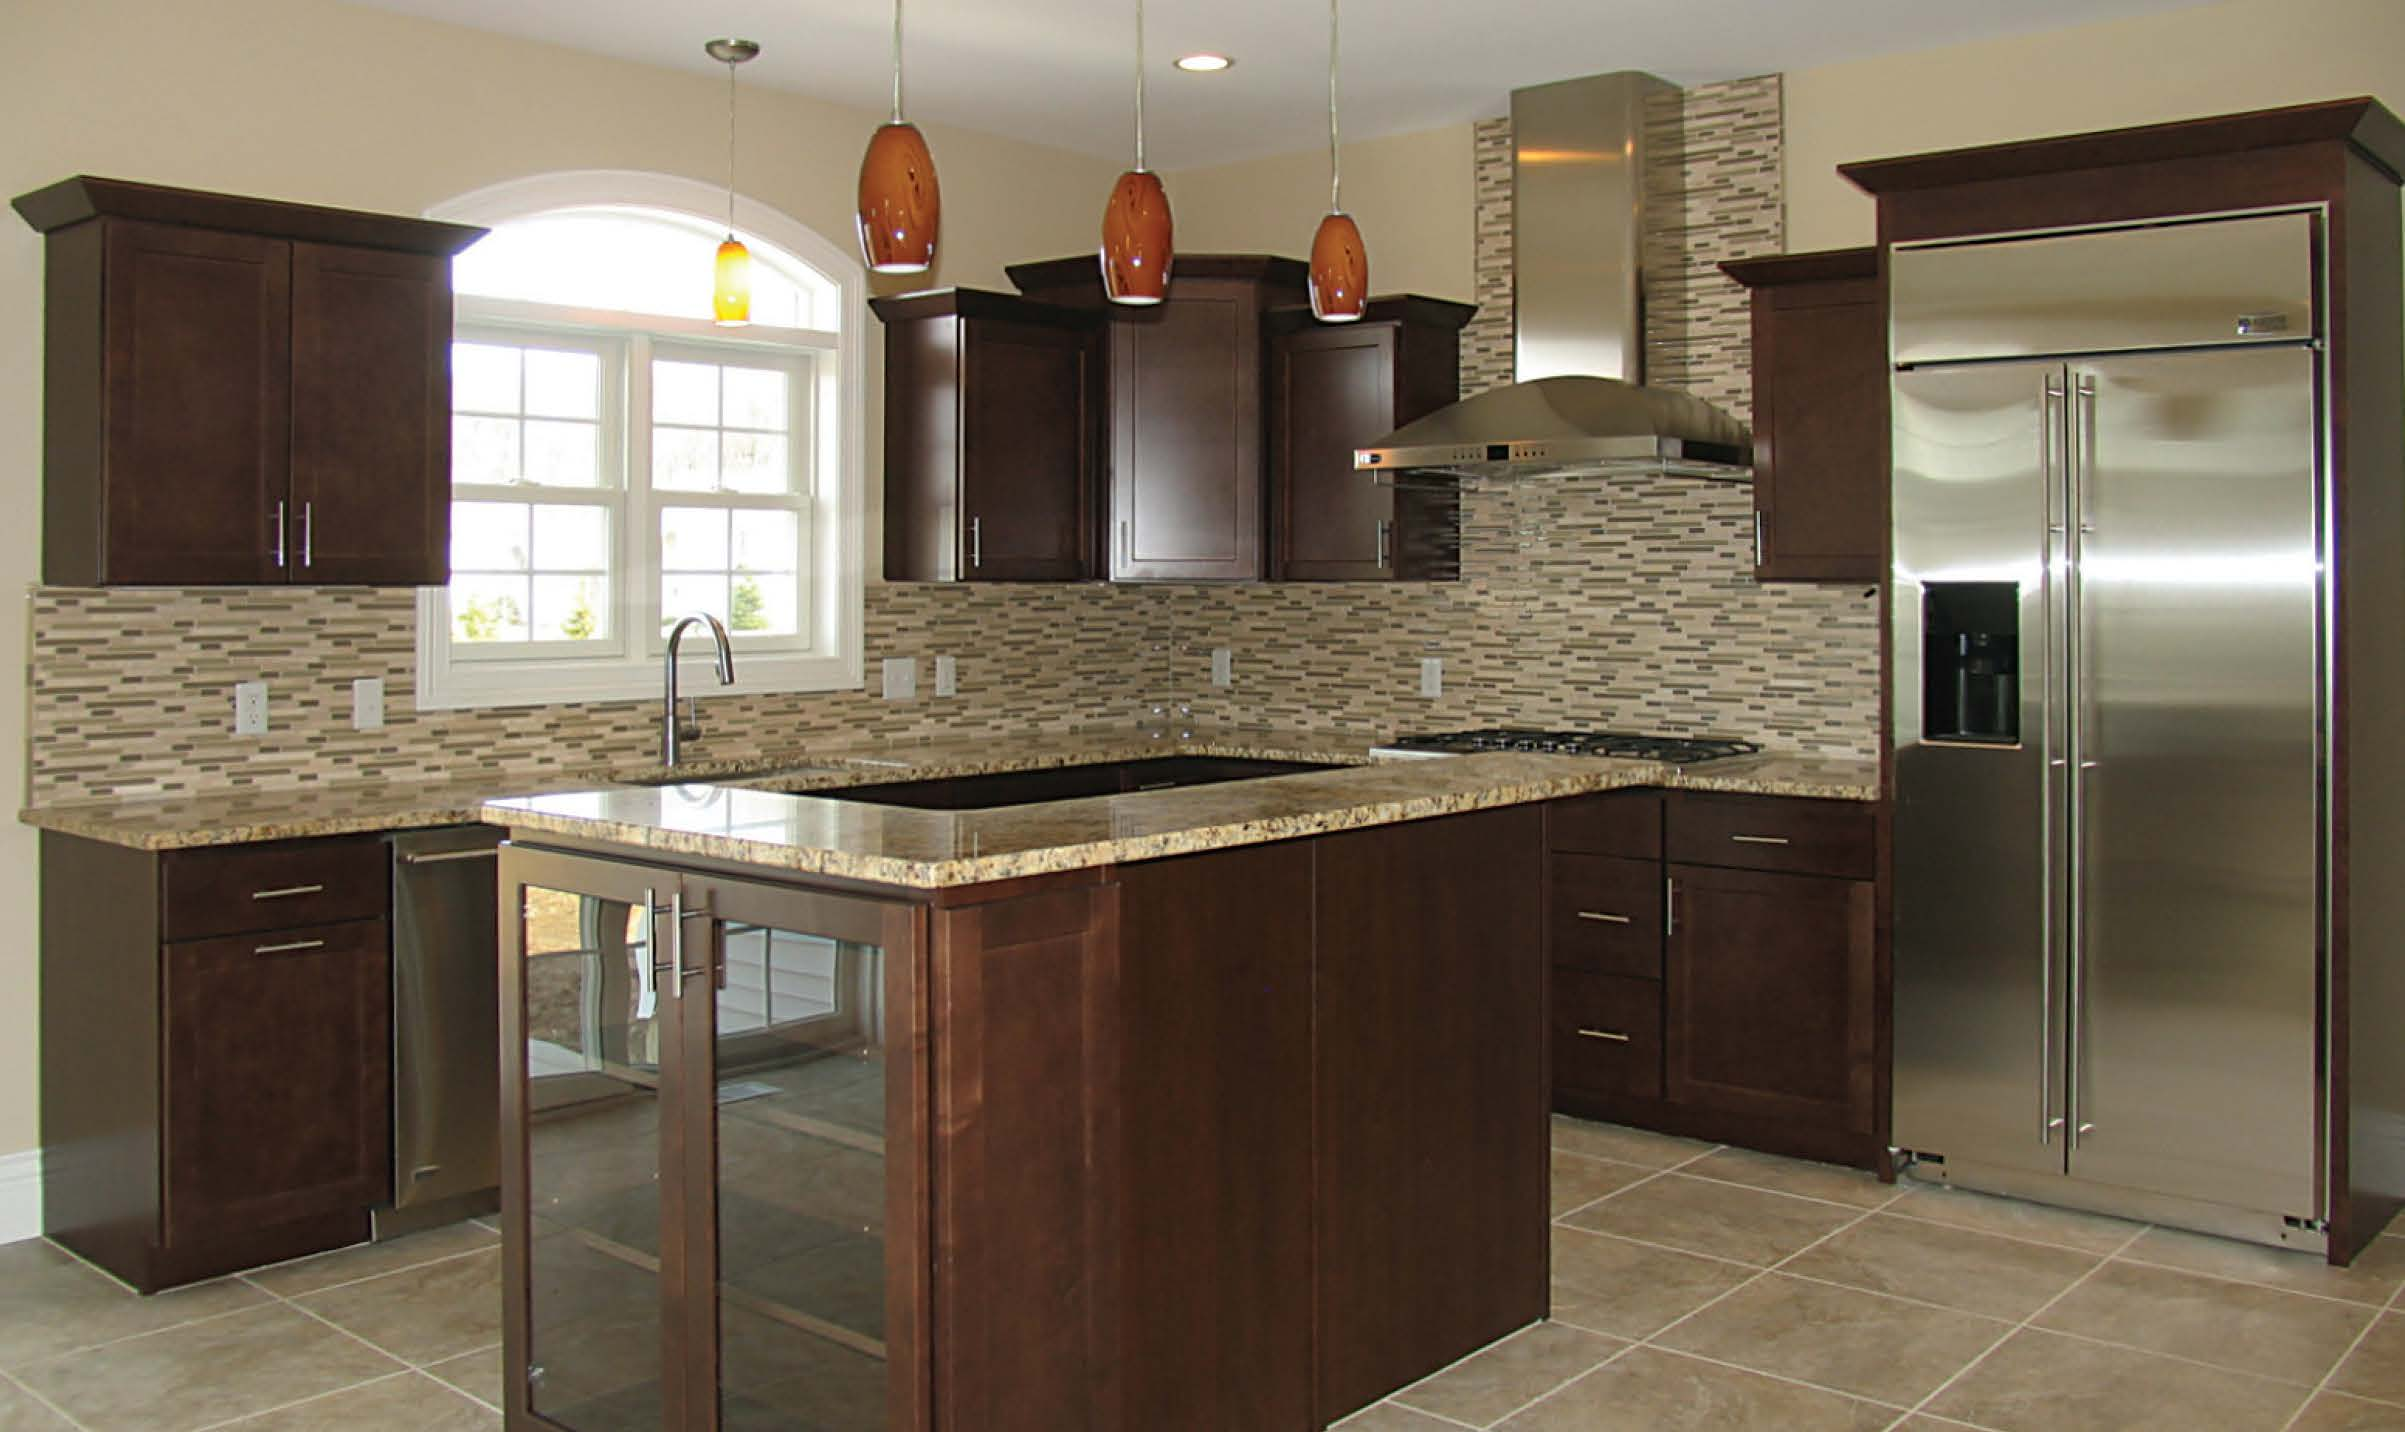 Maple crown molding kitchen cabinets - The